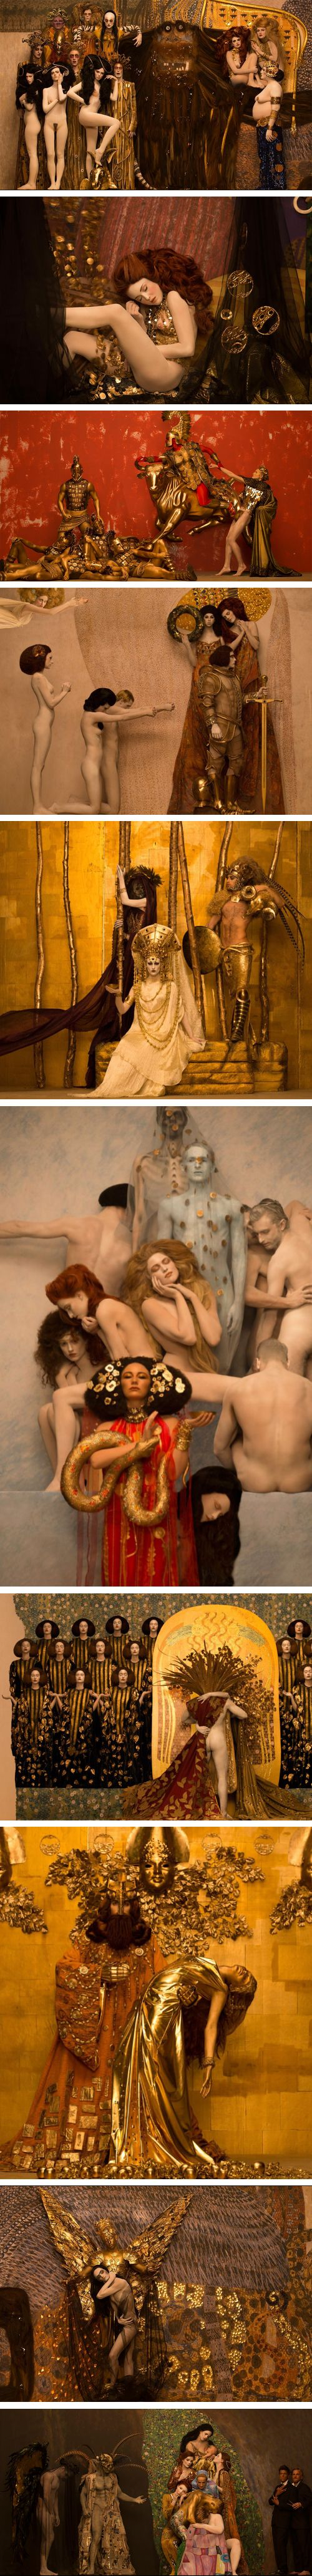 Gustav Klimt Brought to Life by Photographer Inge Prader.